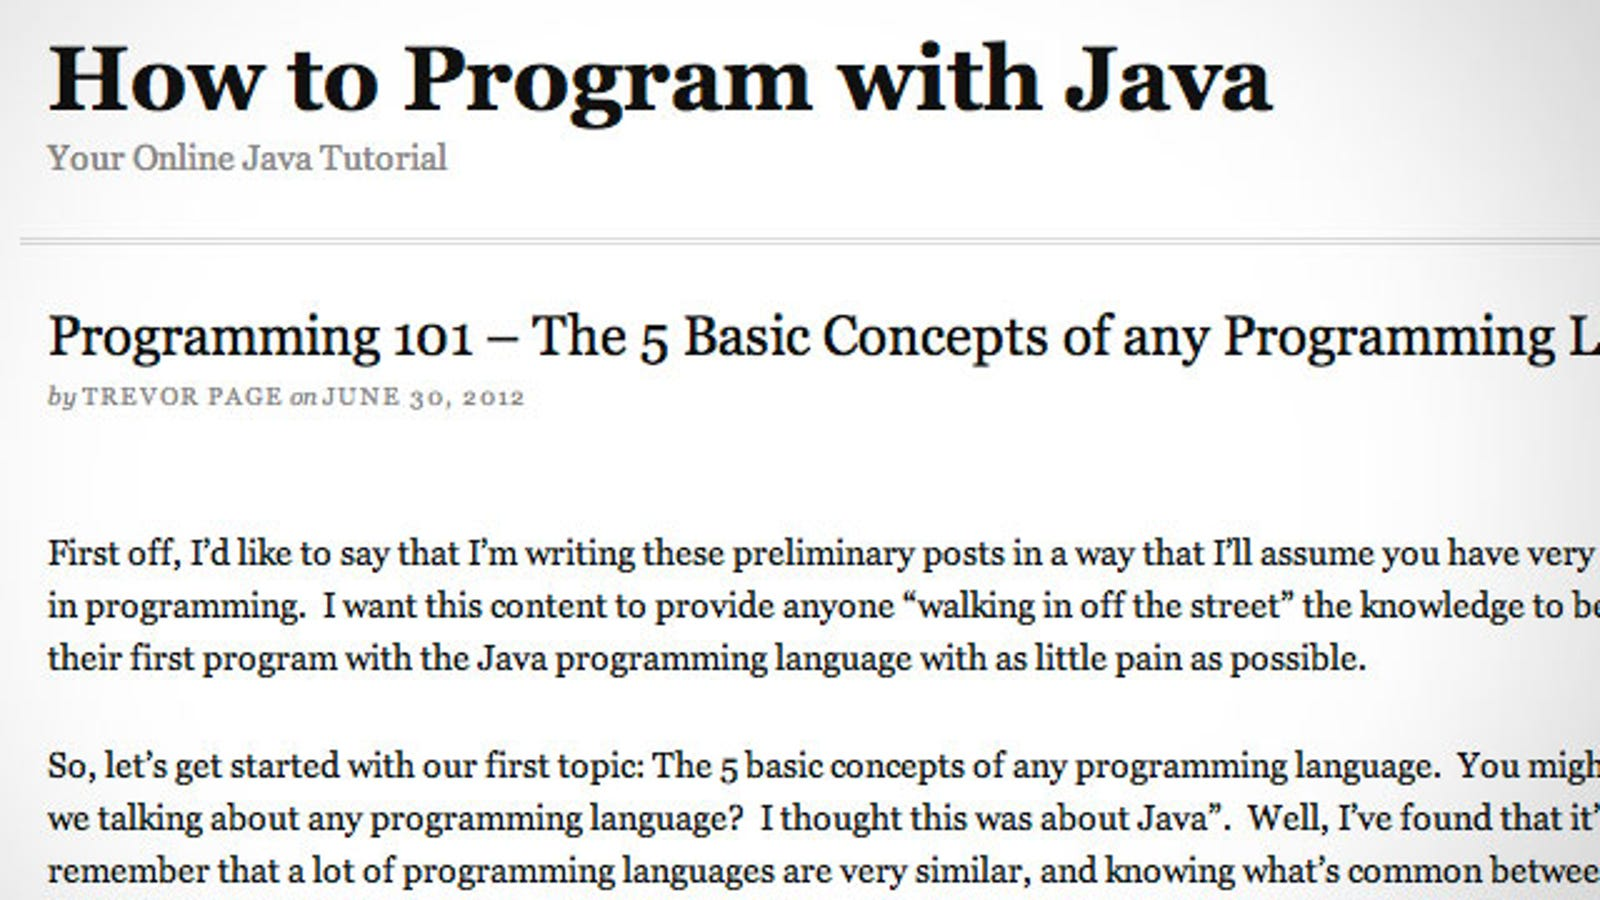 How to Program With Java Teaches You the Basic Concepts of